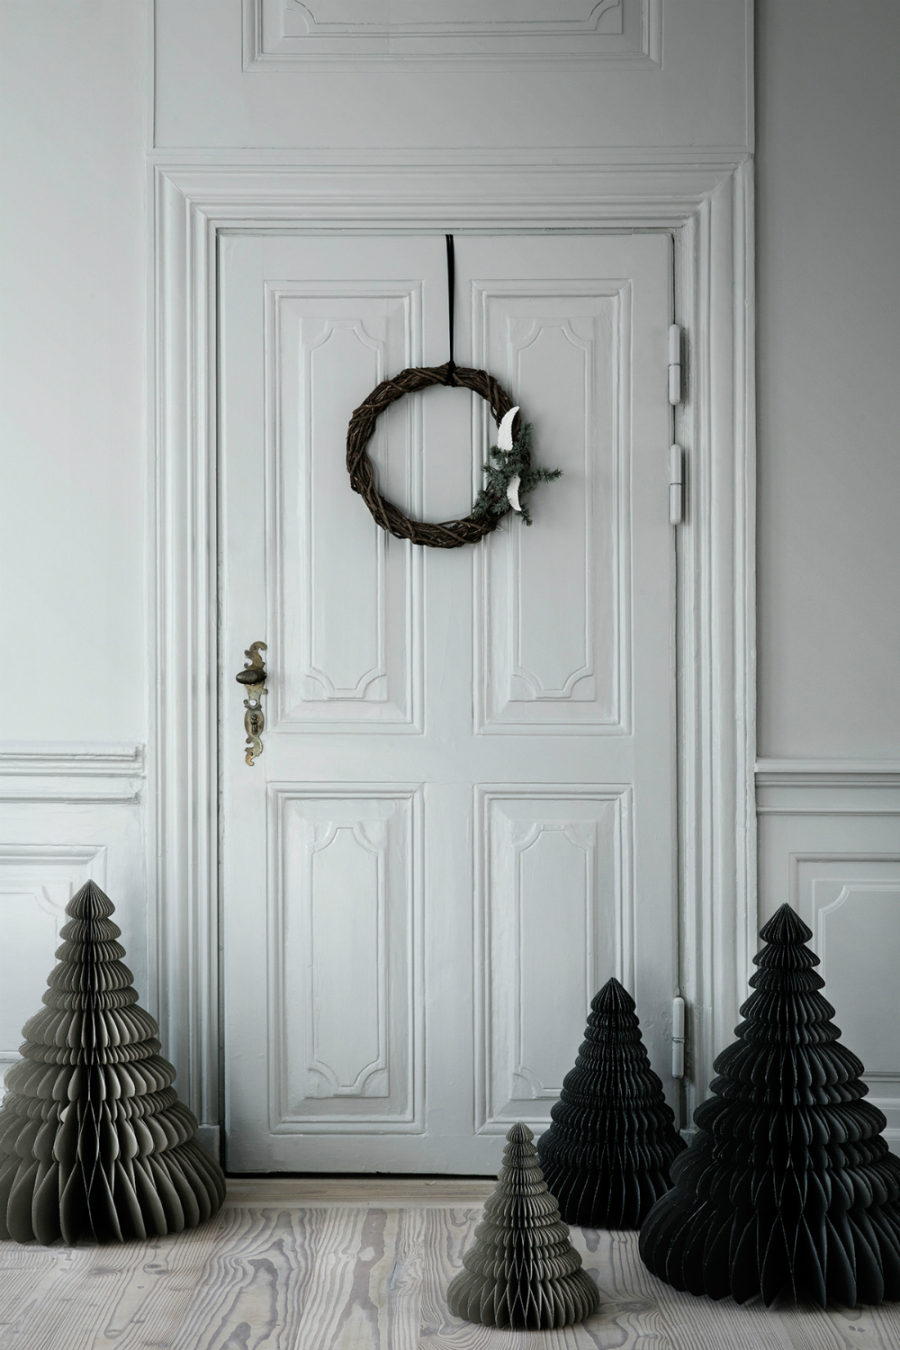 Black paper Christmas trees